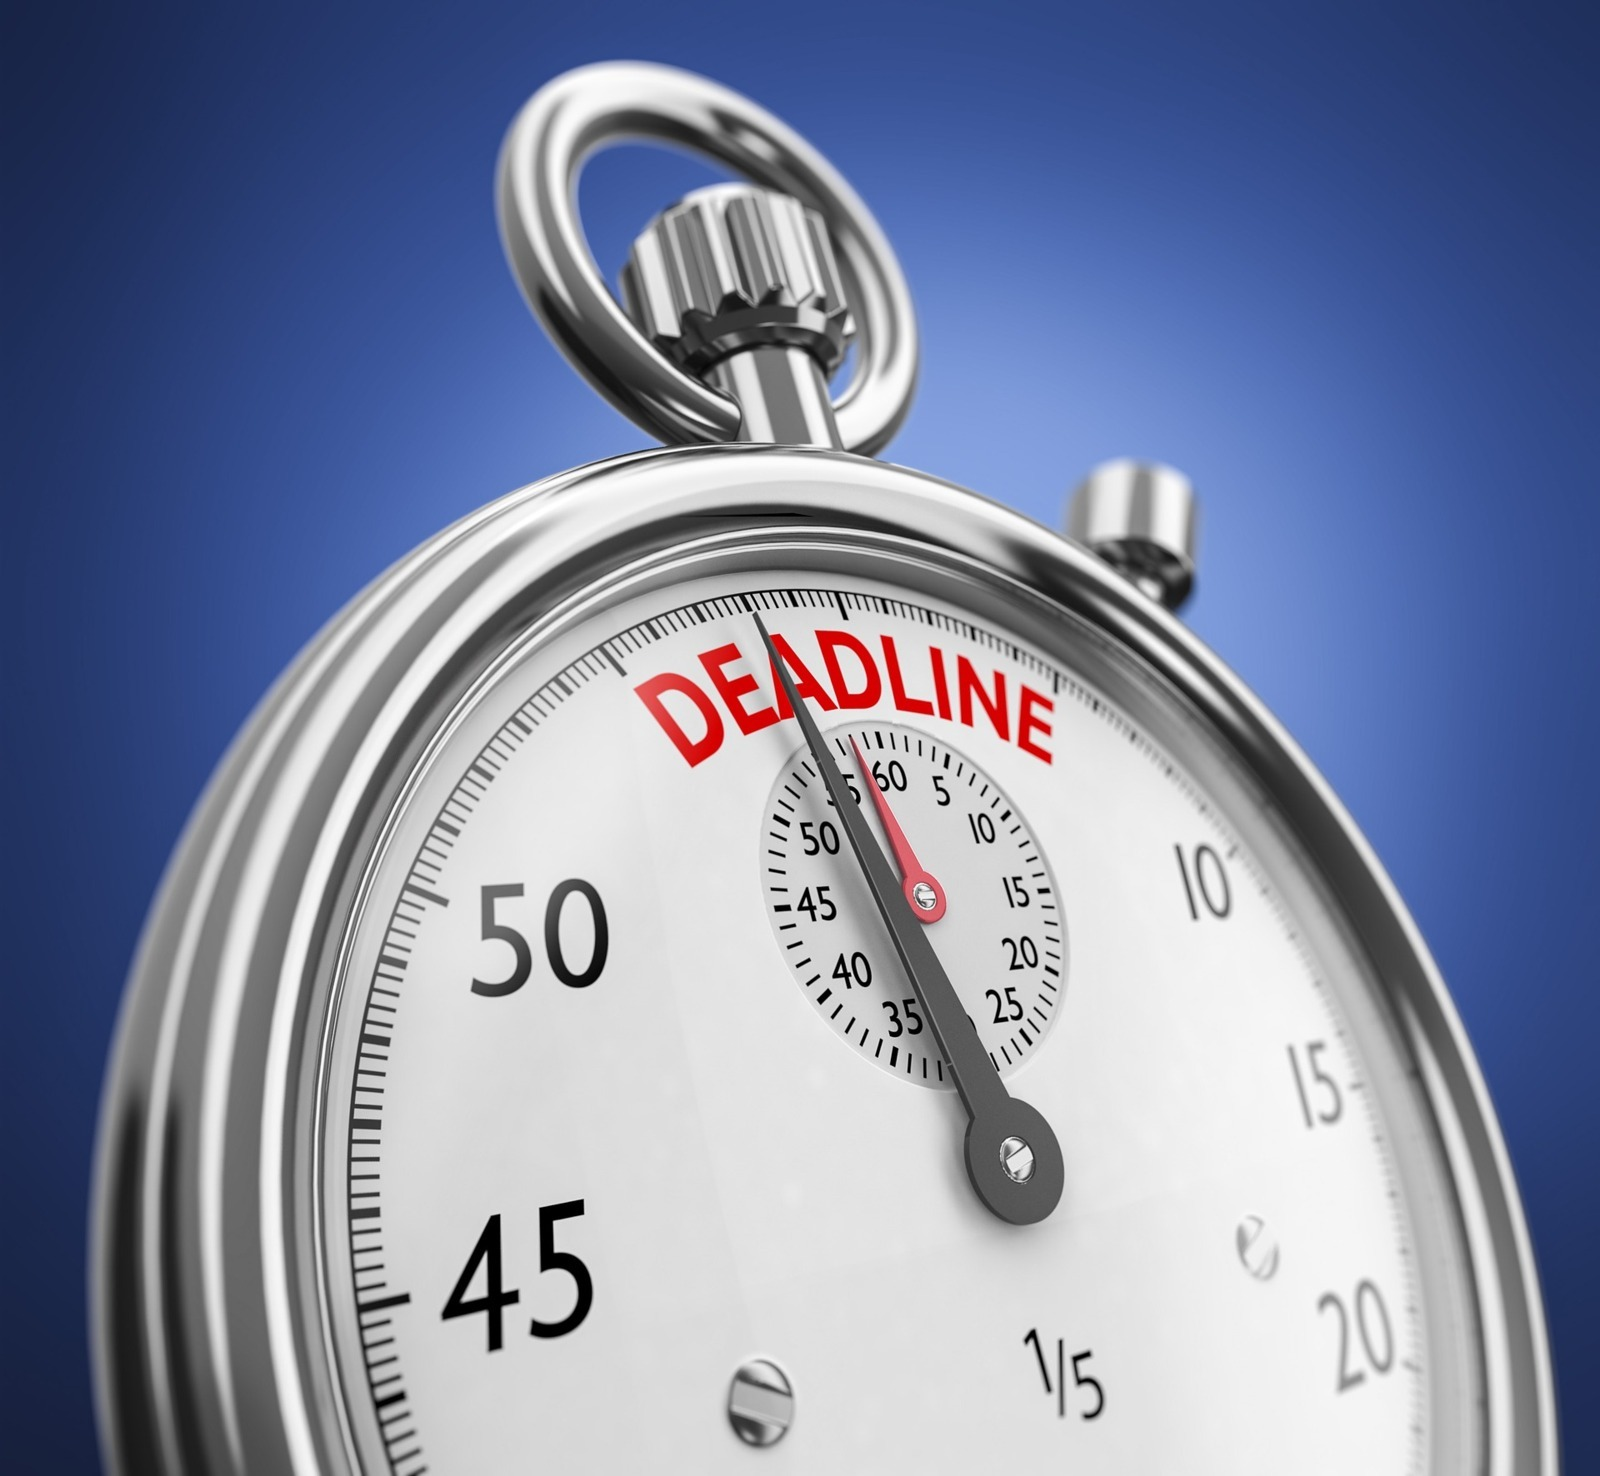 A timer showing a deadline